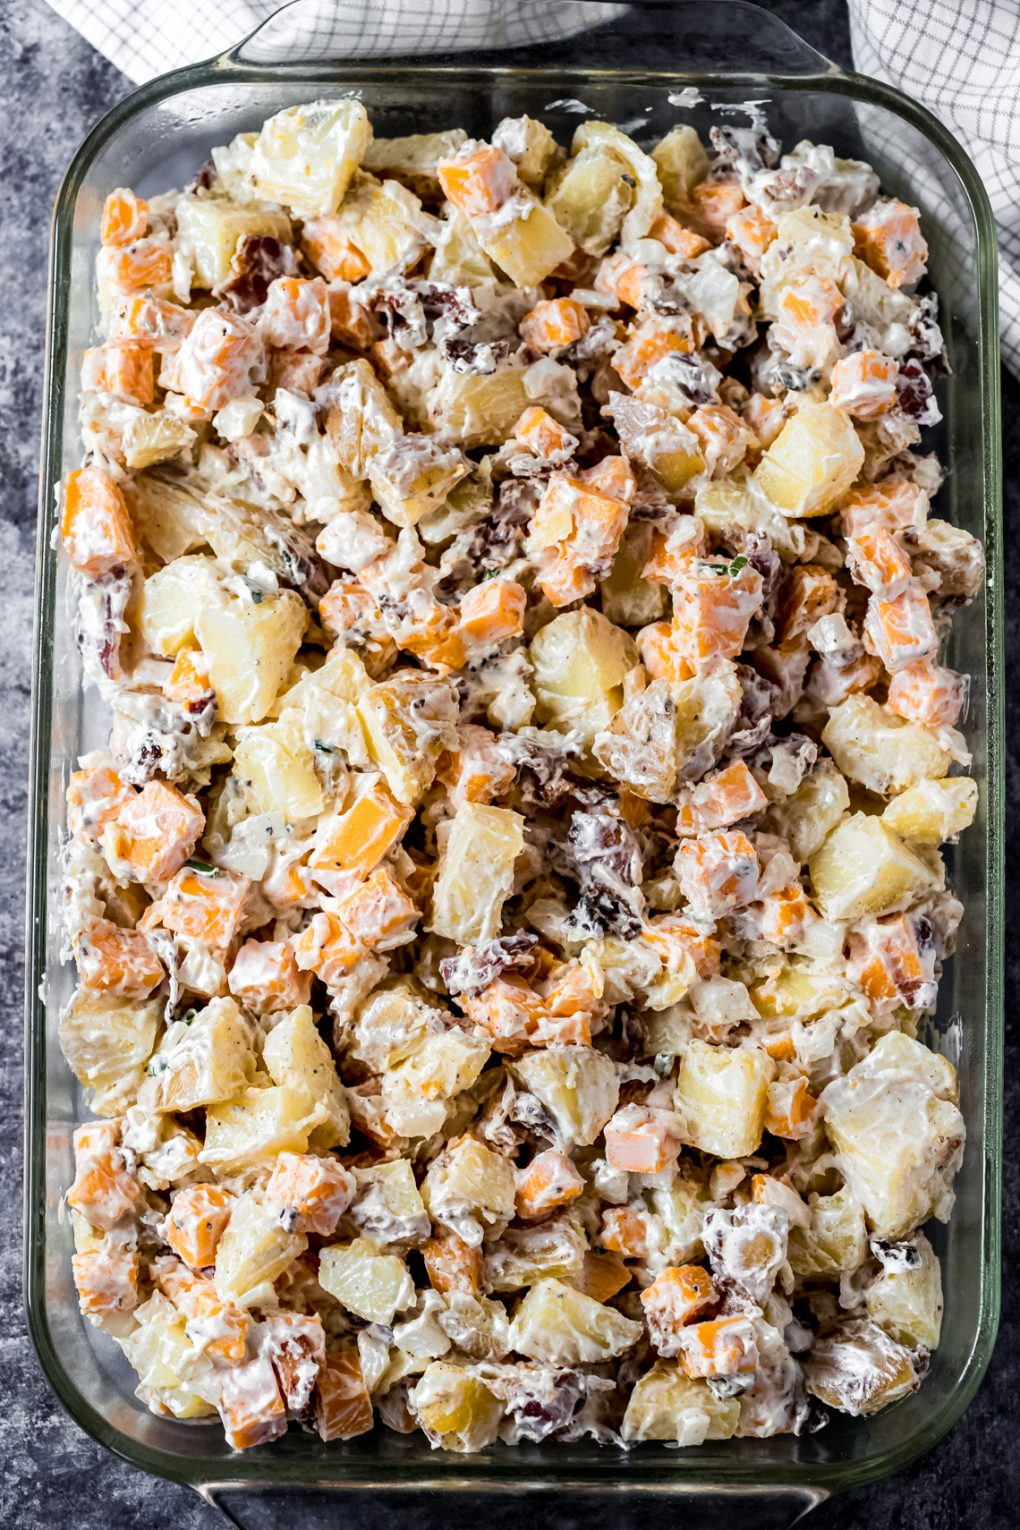 an unbaked dish of cheesy smoked potatoes